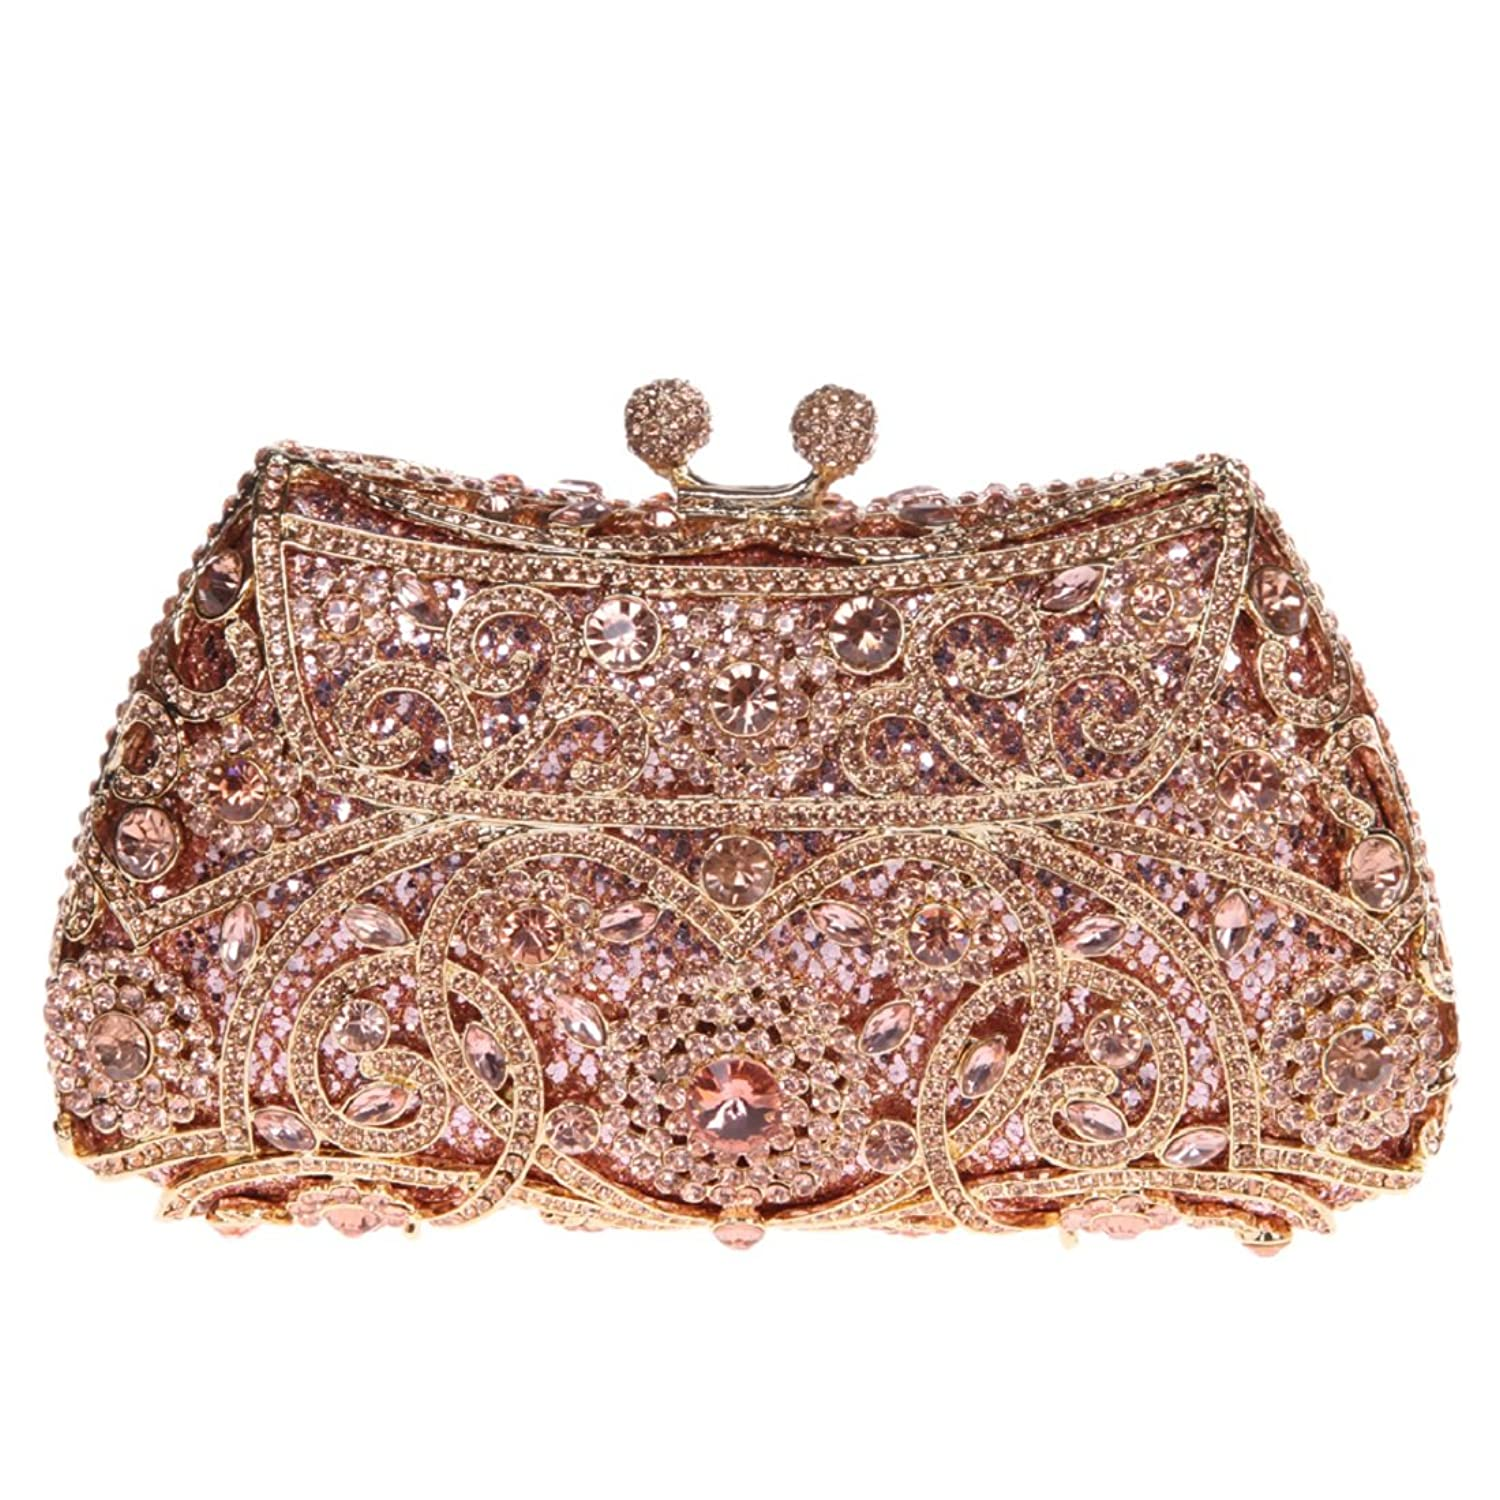 Kisslock Purses And Handbags For Womens Wedding Party Clutch Bags Rose Gold